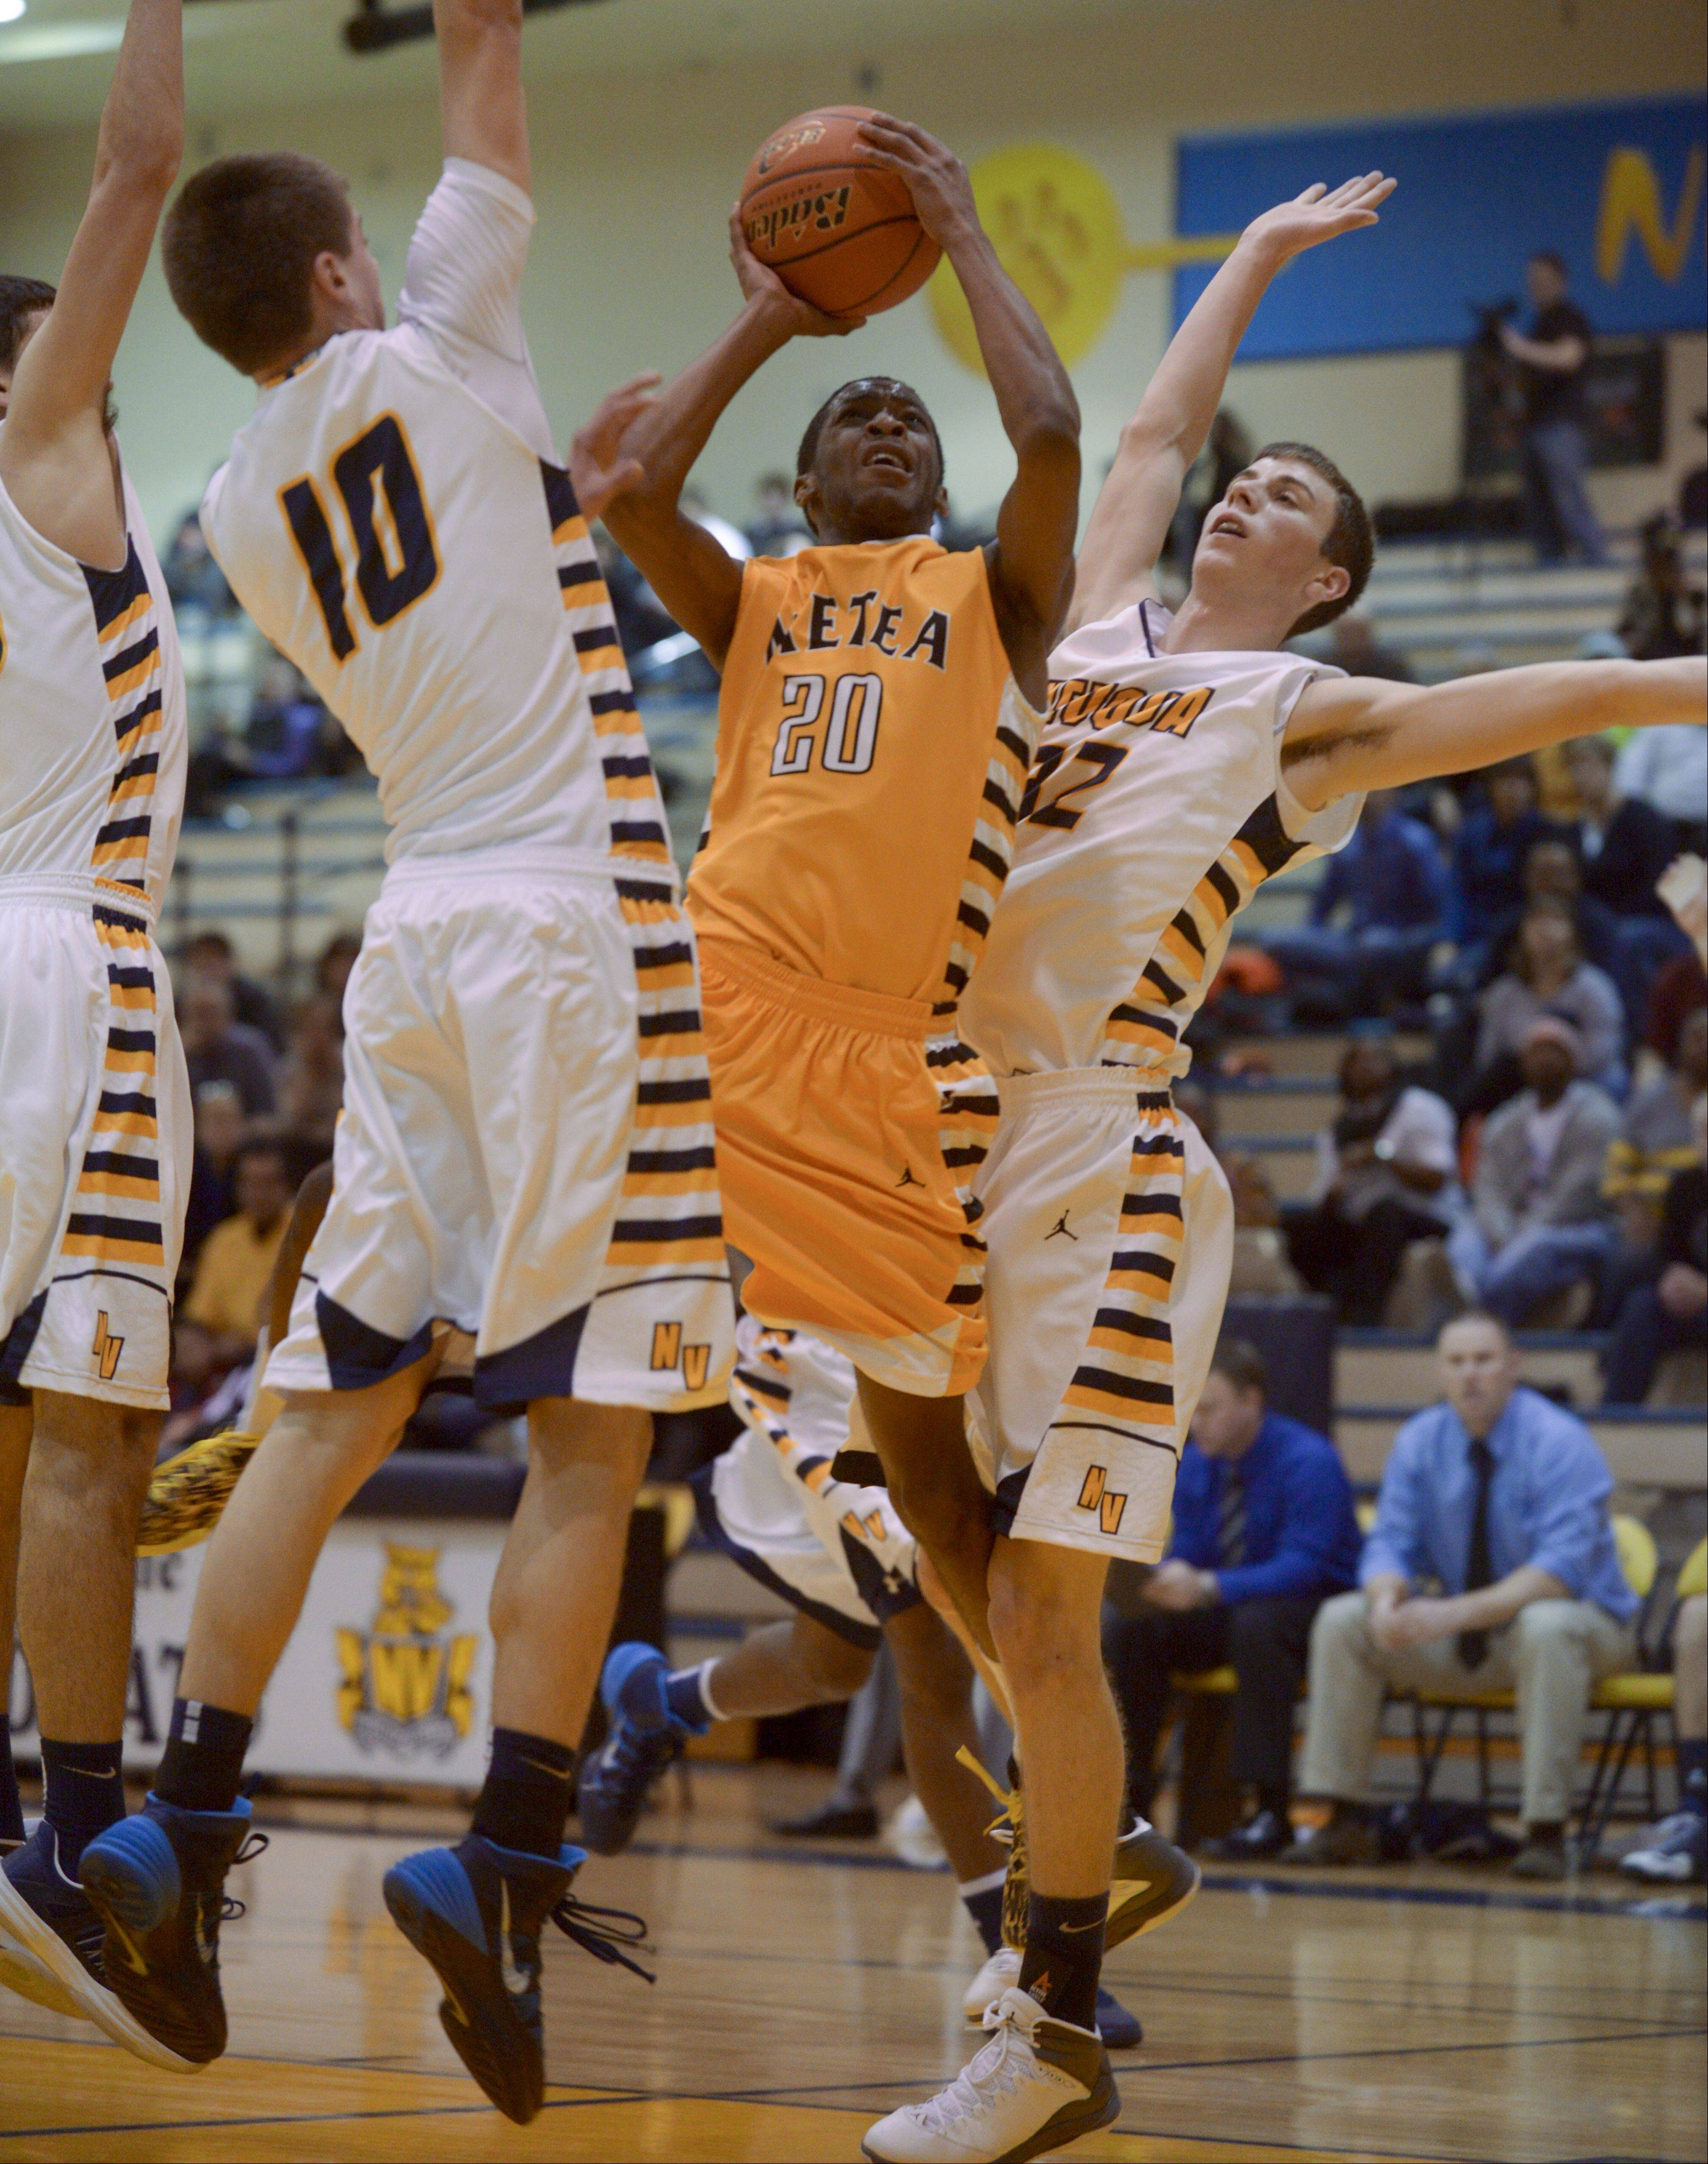 Marquell Oliver of Metea Valley goes up for a shot between Jacob Eminger and Connor Raridon of Neuqua Valley .